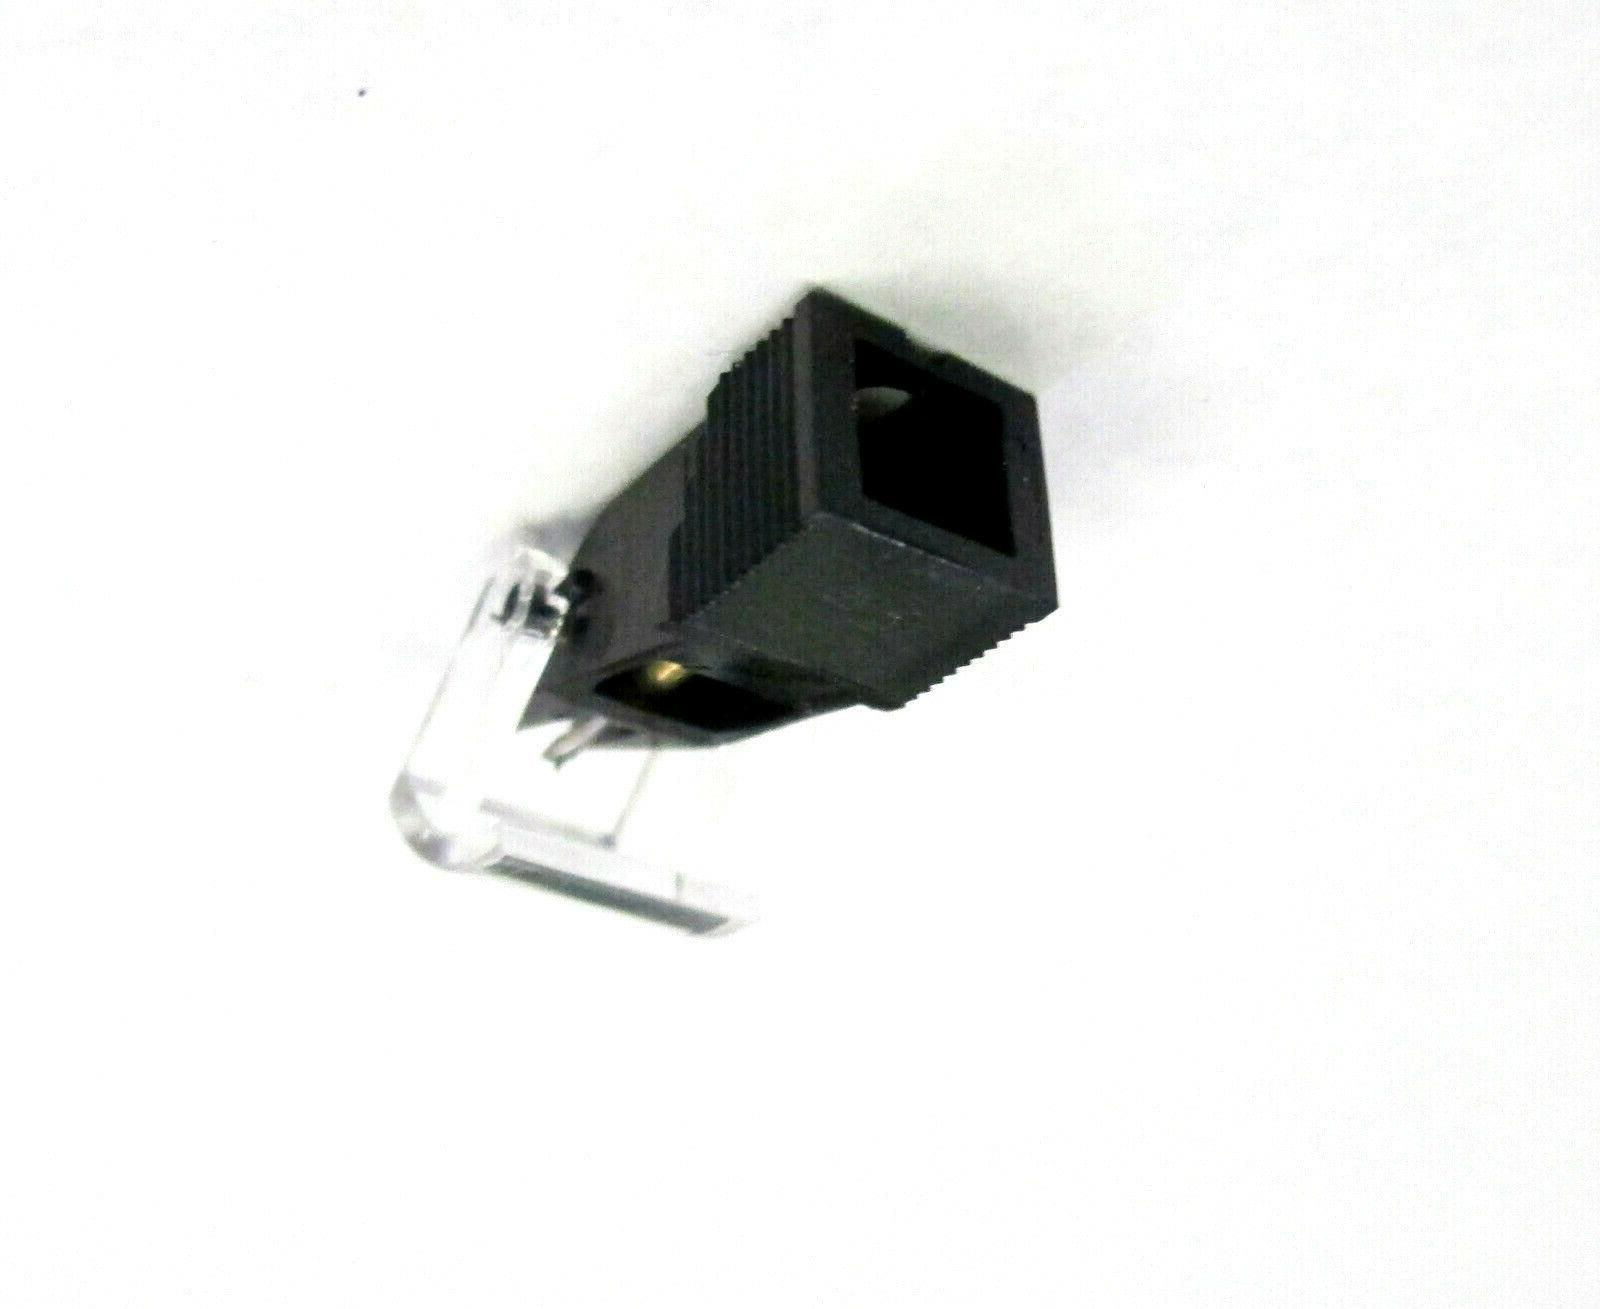 needle stylus for ortofon cartridges used in